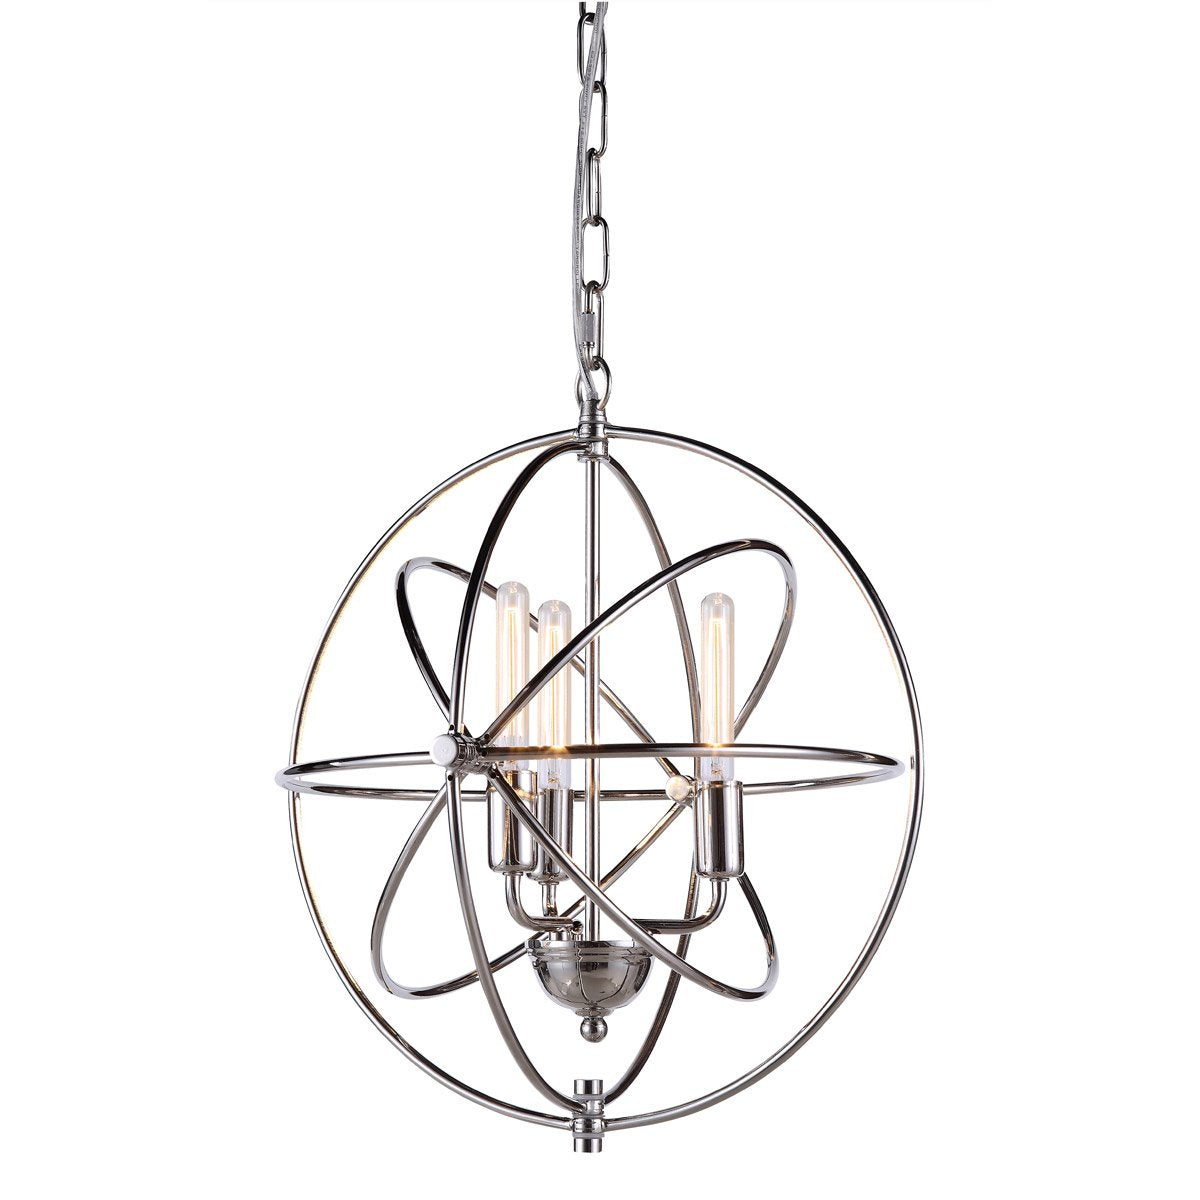 Vienna 17 Mini Pendant With 3 Lights - Polished Nickel Finish Pendant